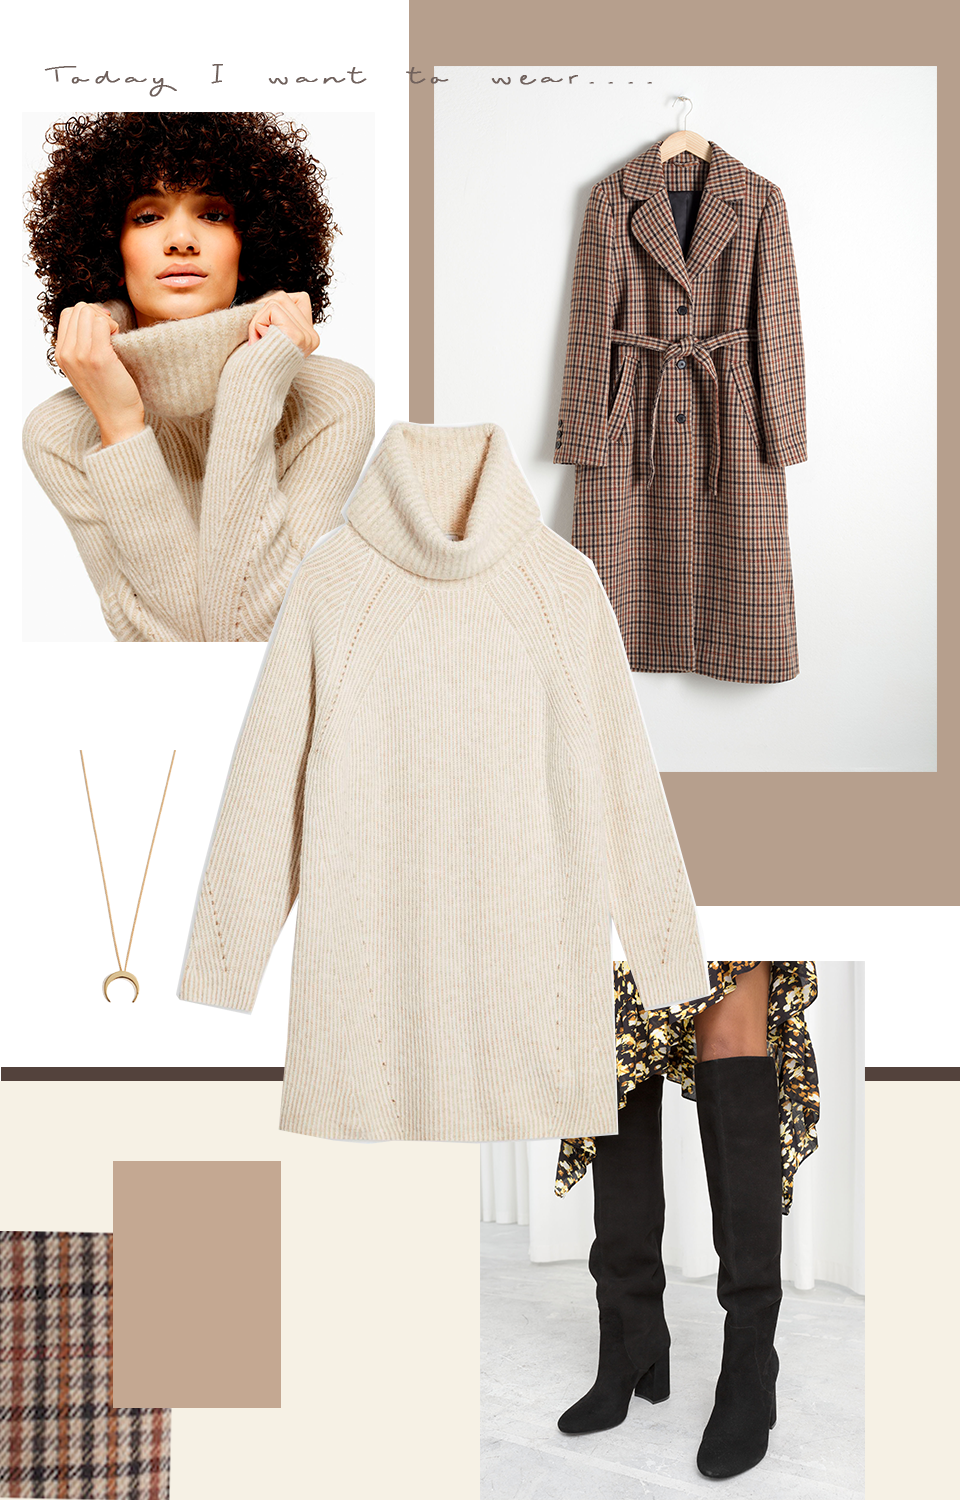 Autumn fashion outfit inspiration neutral colours - Inspiraatiota syyspukeutumiseen, muoti, neutraalit värit